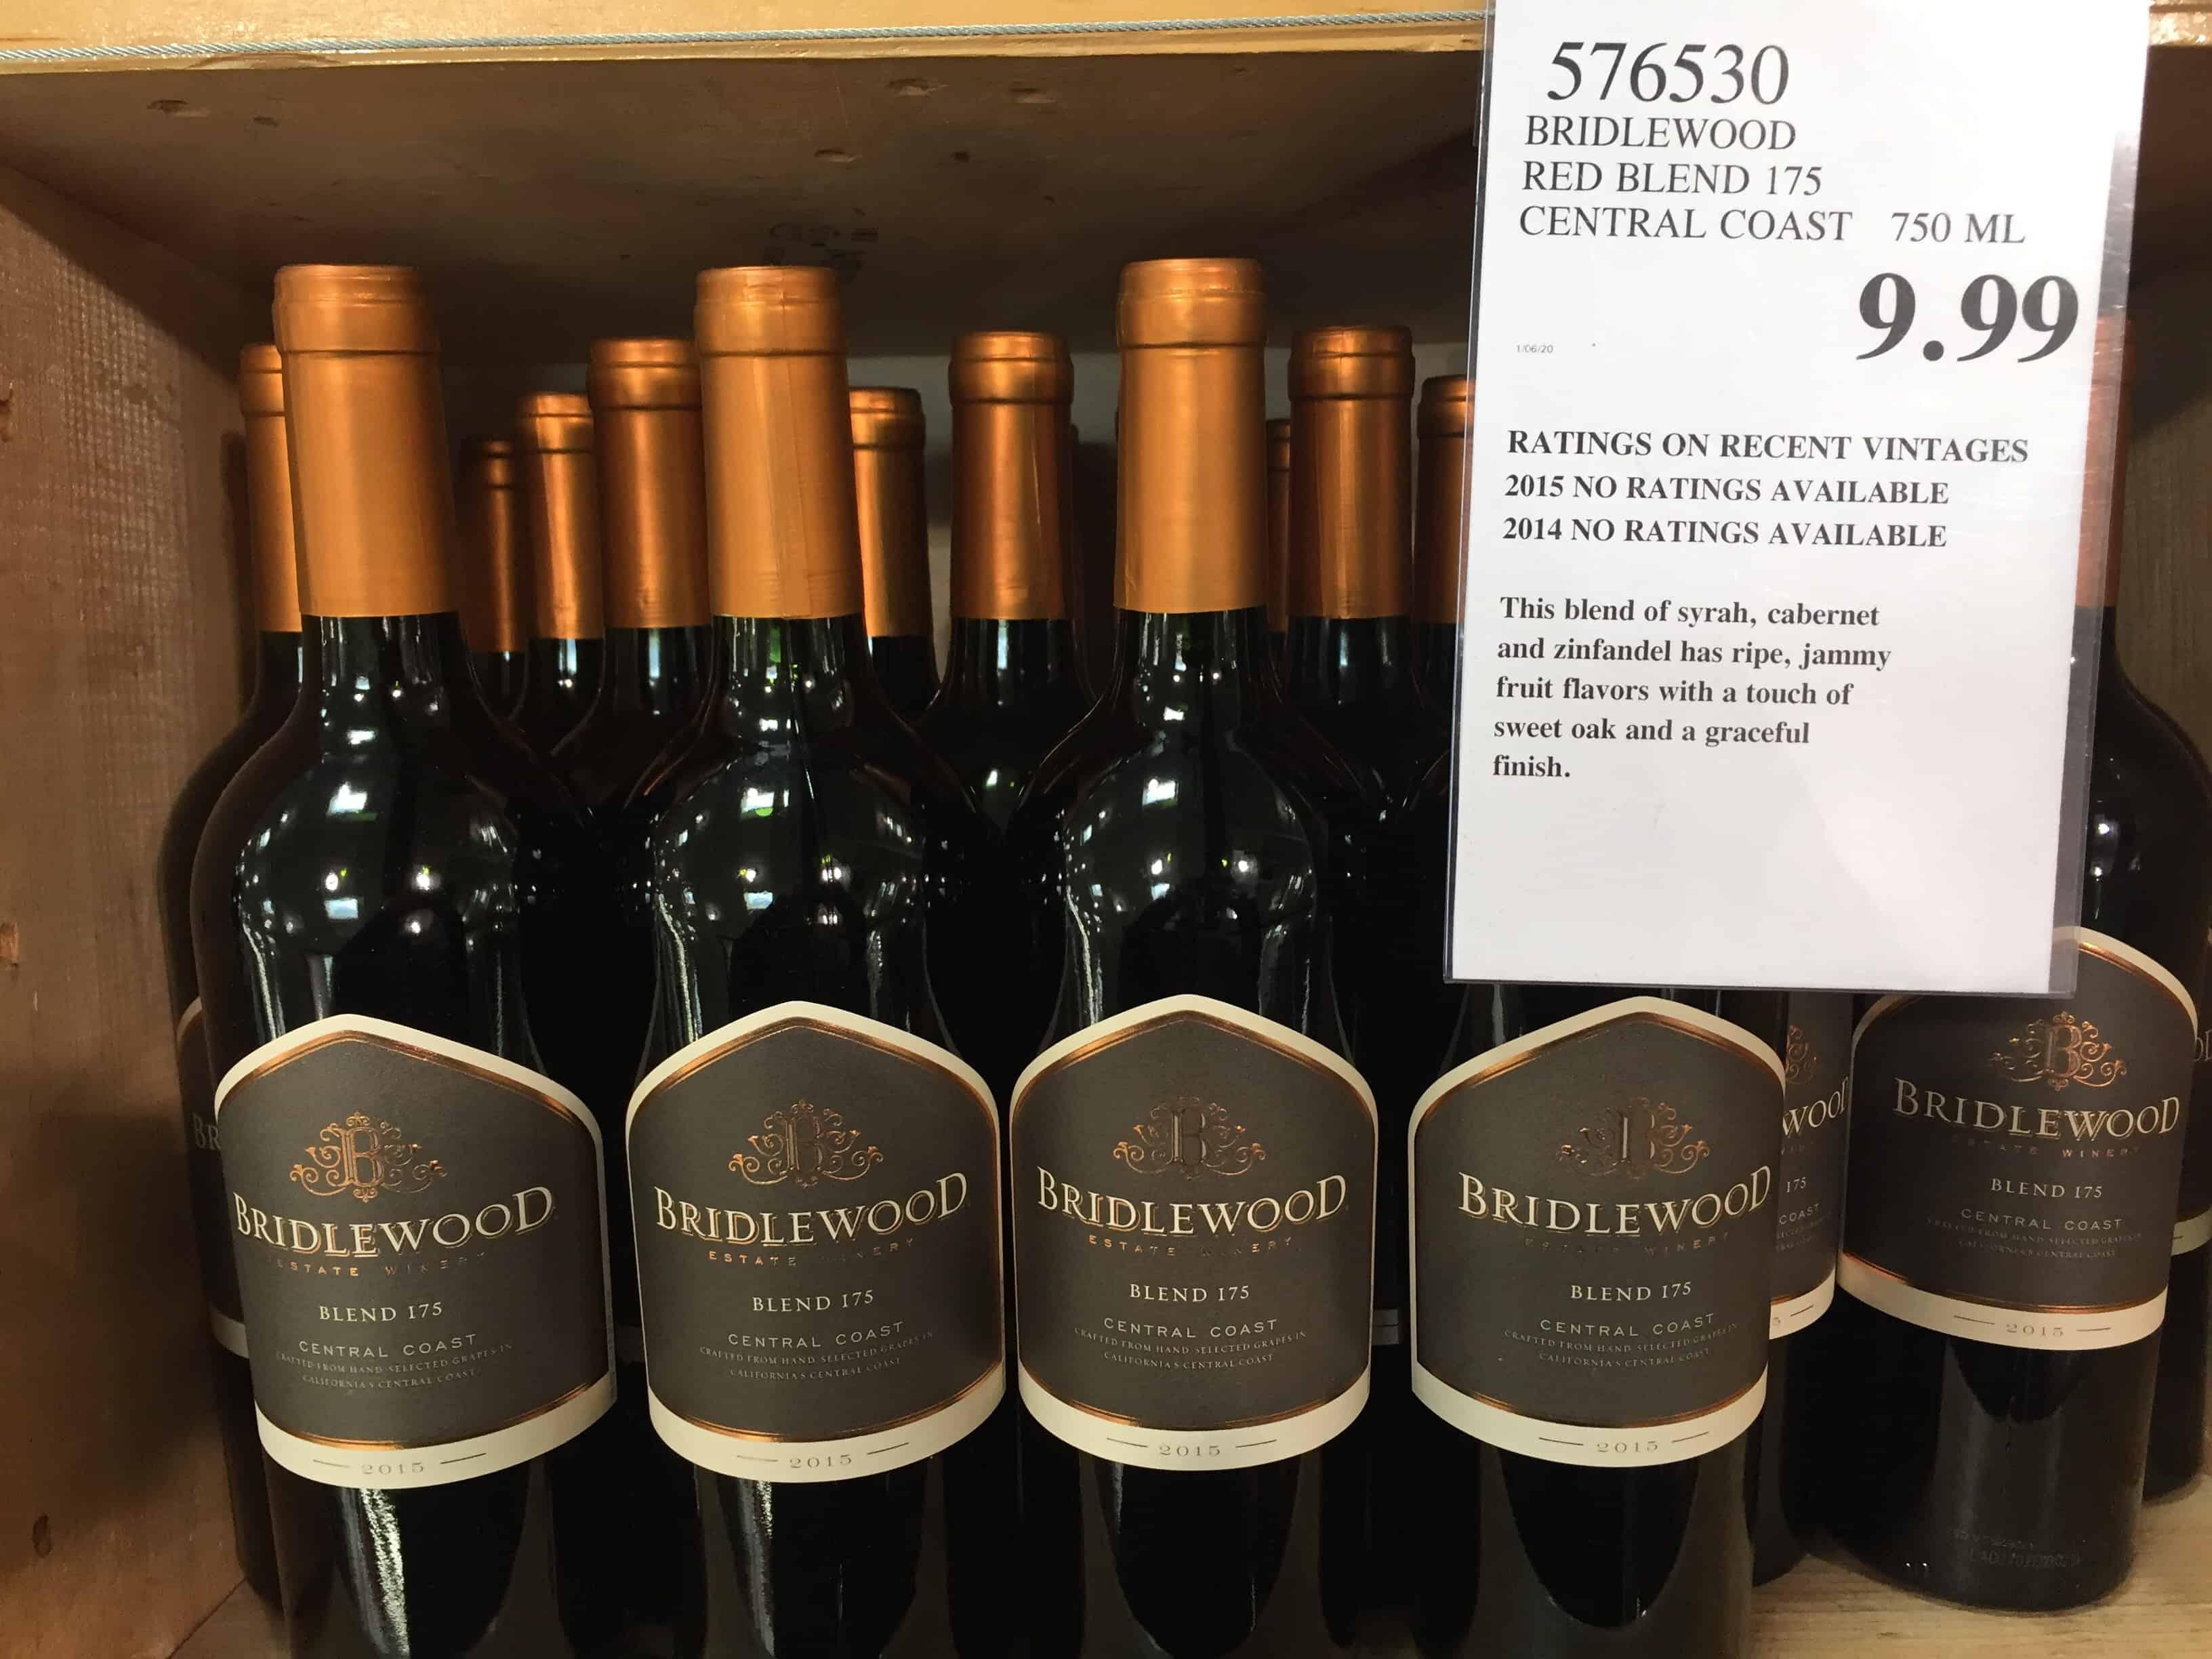 Costco wine bin holding bottles of Bridlewood Red Blend wine